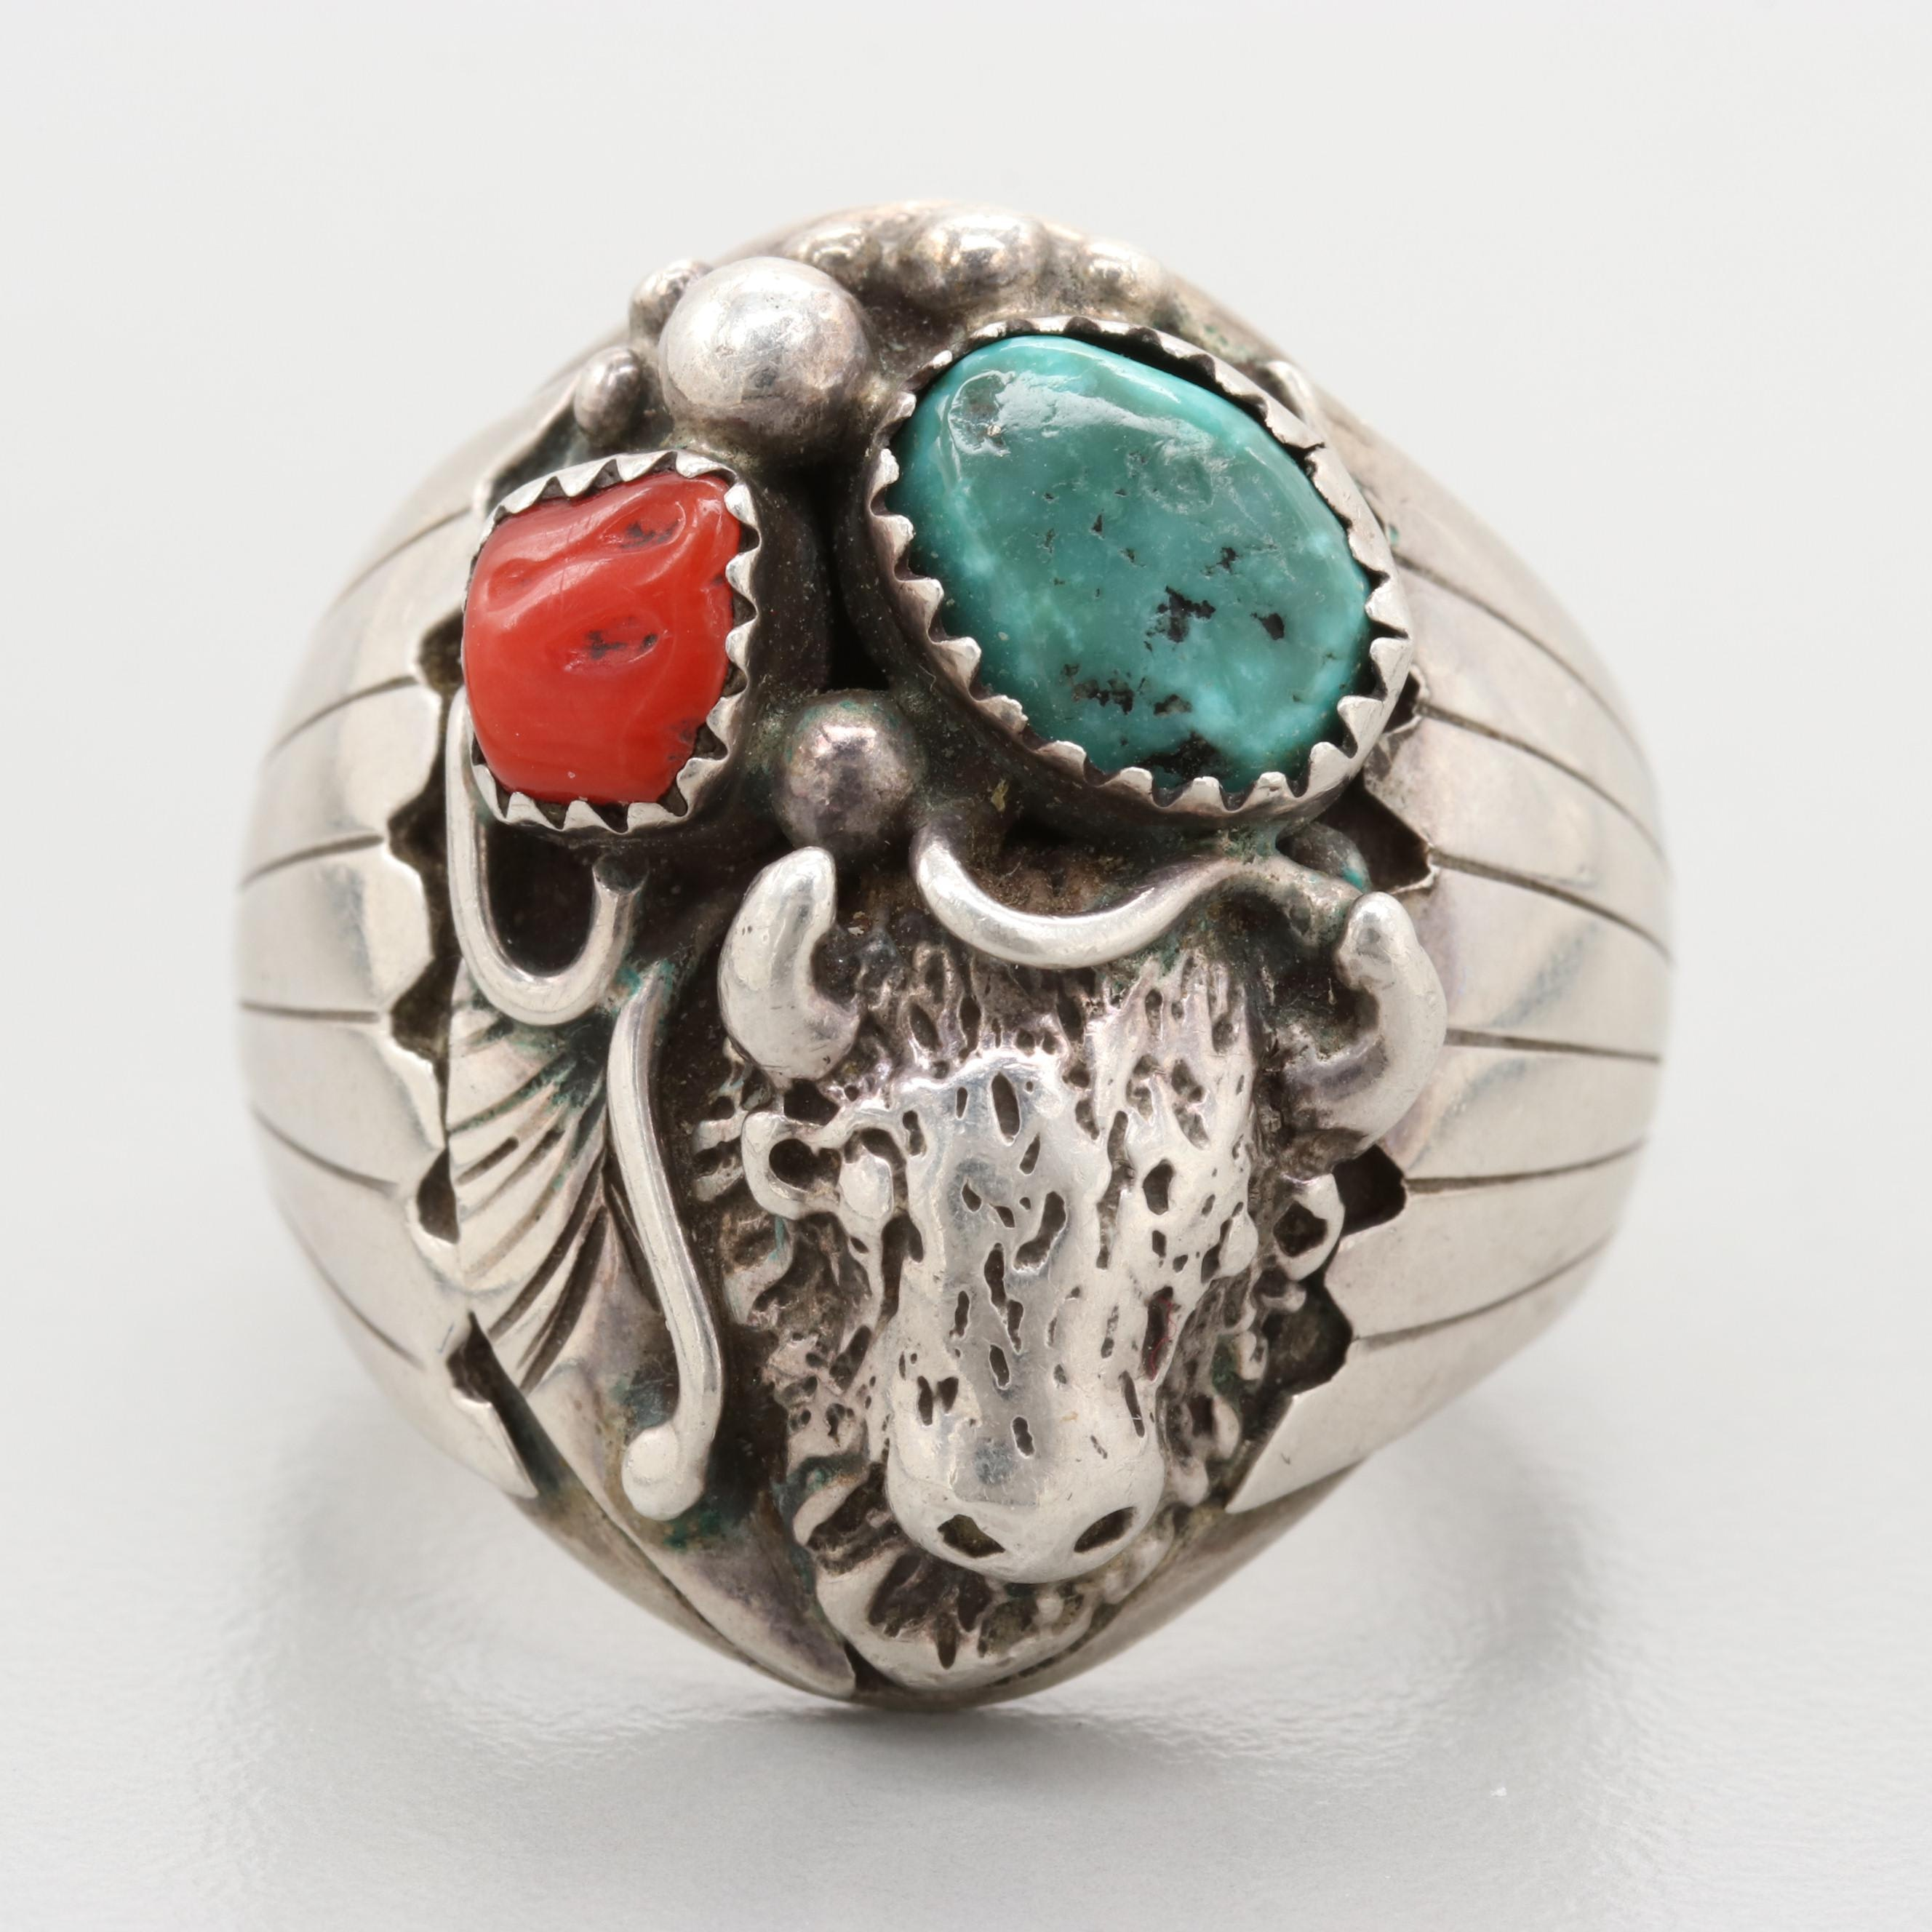 Richard and Rita Begay Navajo Diné Sterling Silver Turquoise and Coral Ring